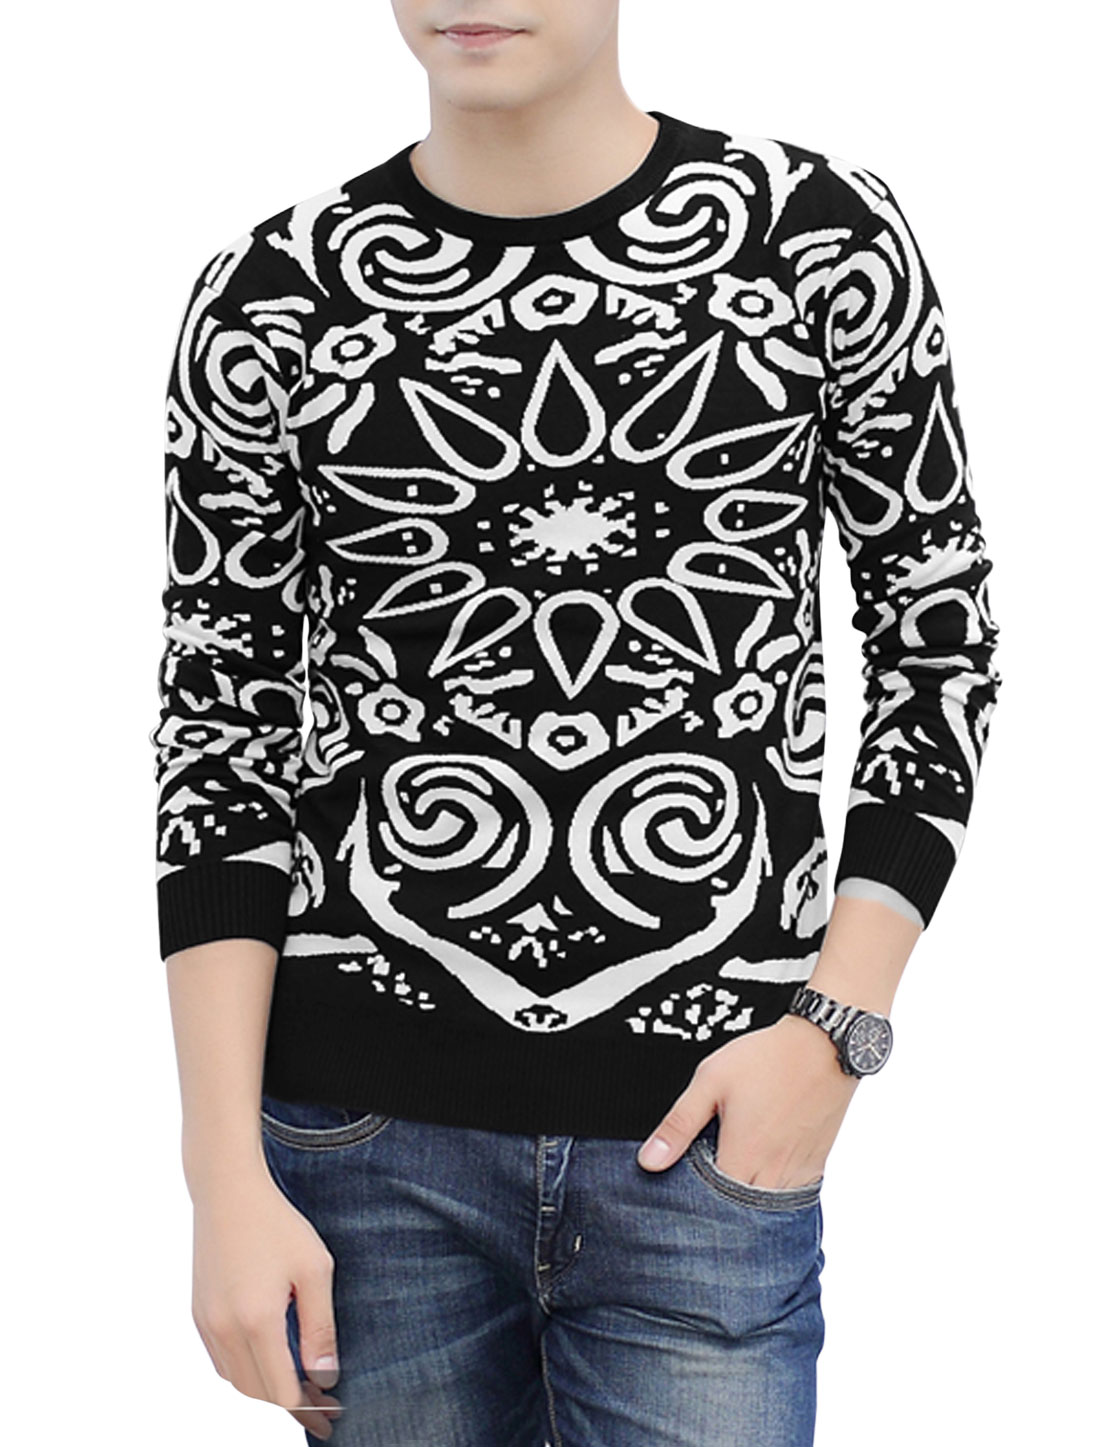 Men Round Neck Long Sleeves Novelty Prints Slipover Newly Knit Top Black White M